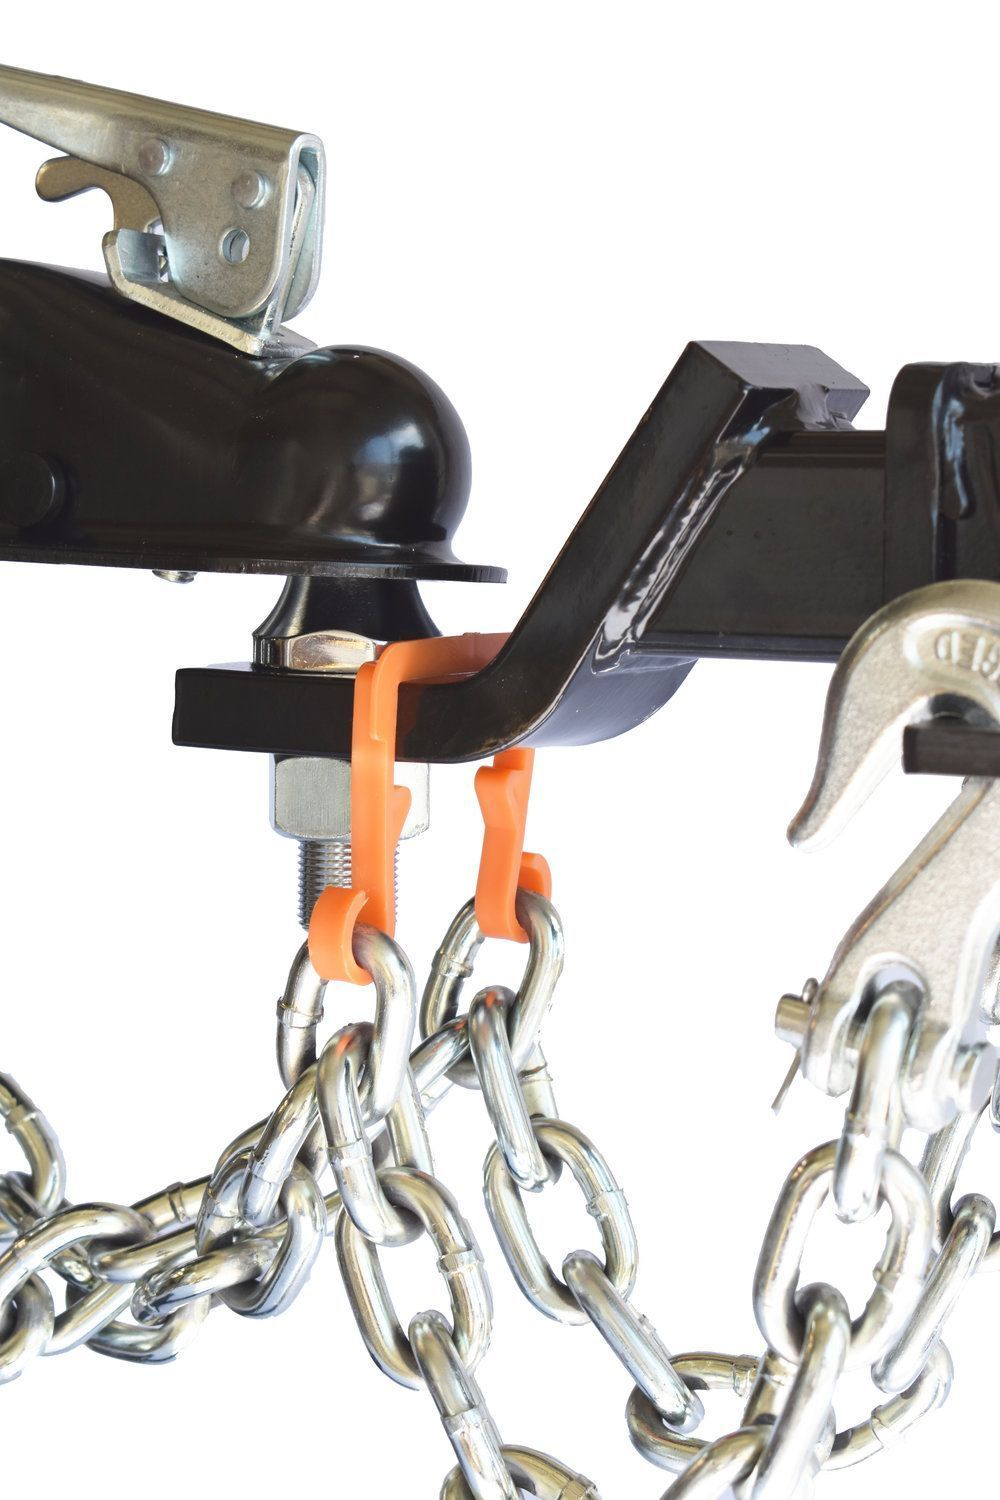 Keep safety chains up off the road while towing fits